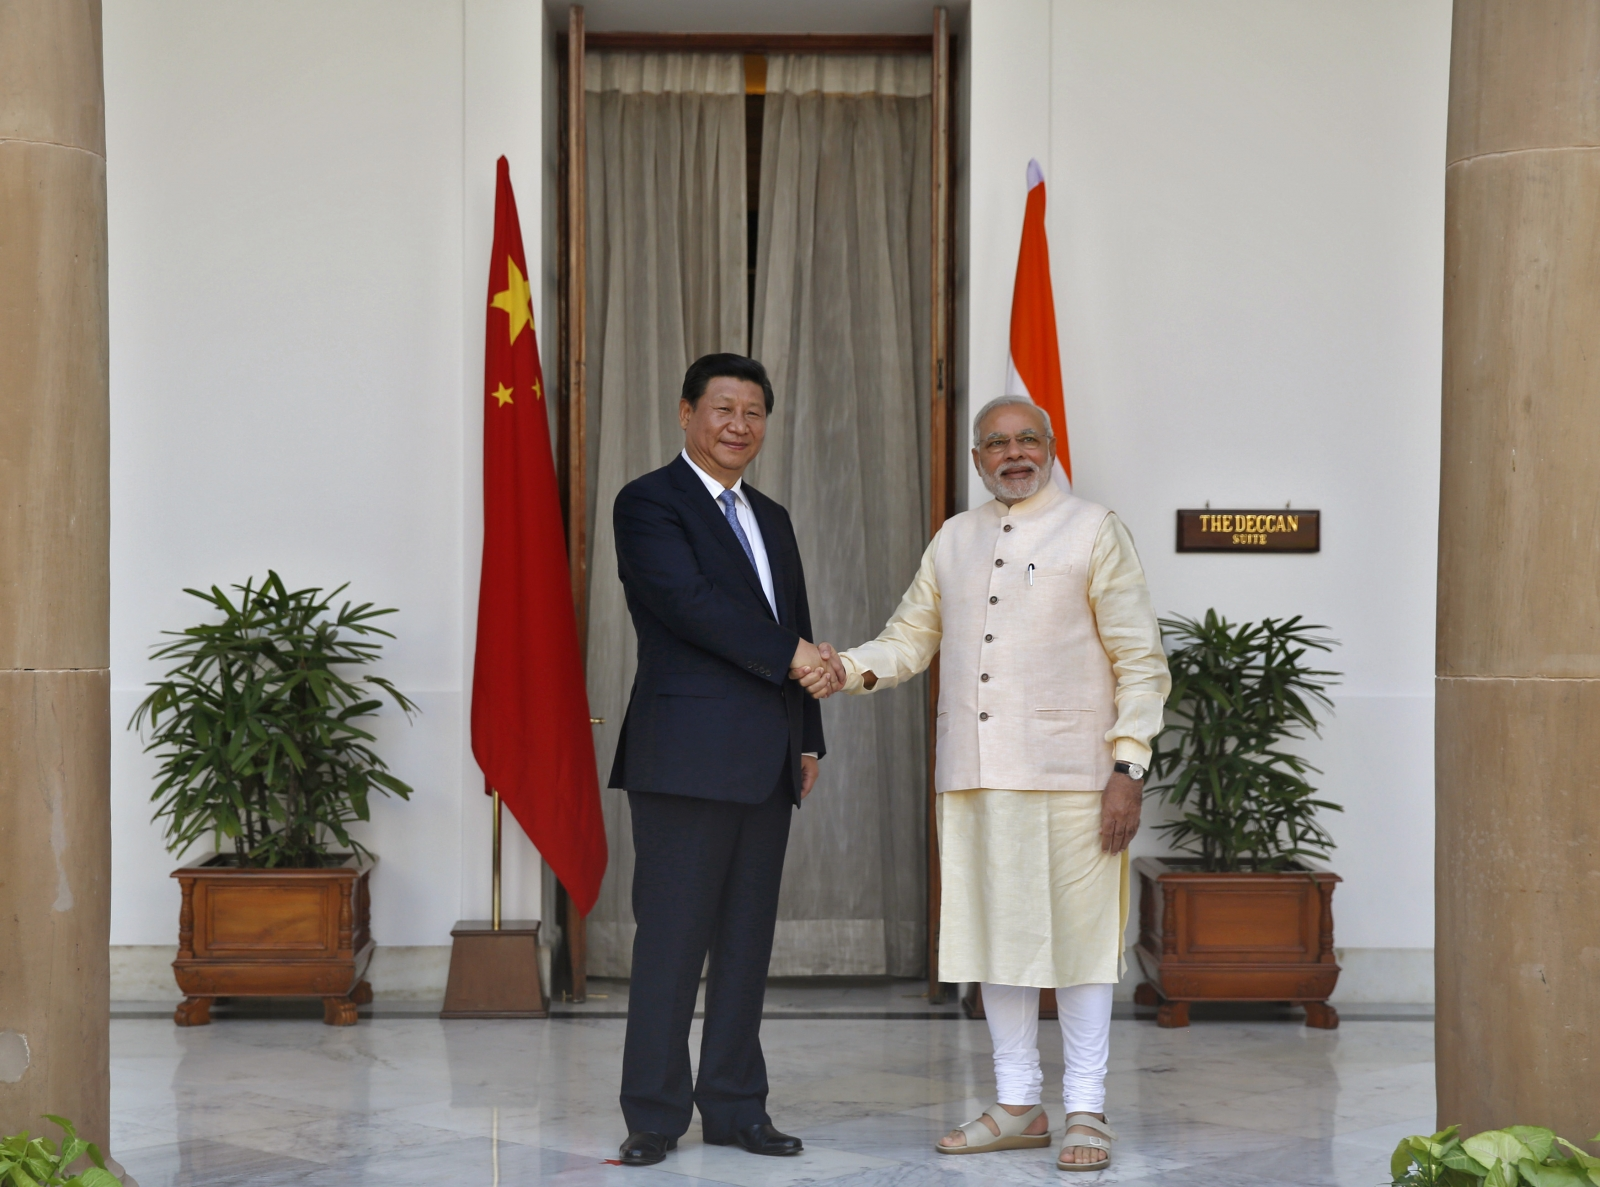 India's Prime Minister Narendra Modi (R) and China's President Xi Jinping shake hands during a photo opportunity ahead of their meeting at Hyderabad House in New Delhi